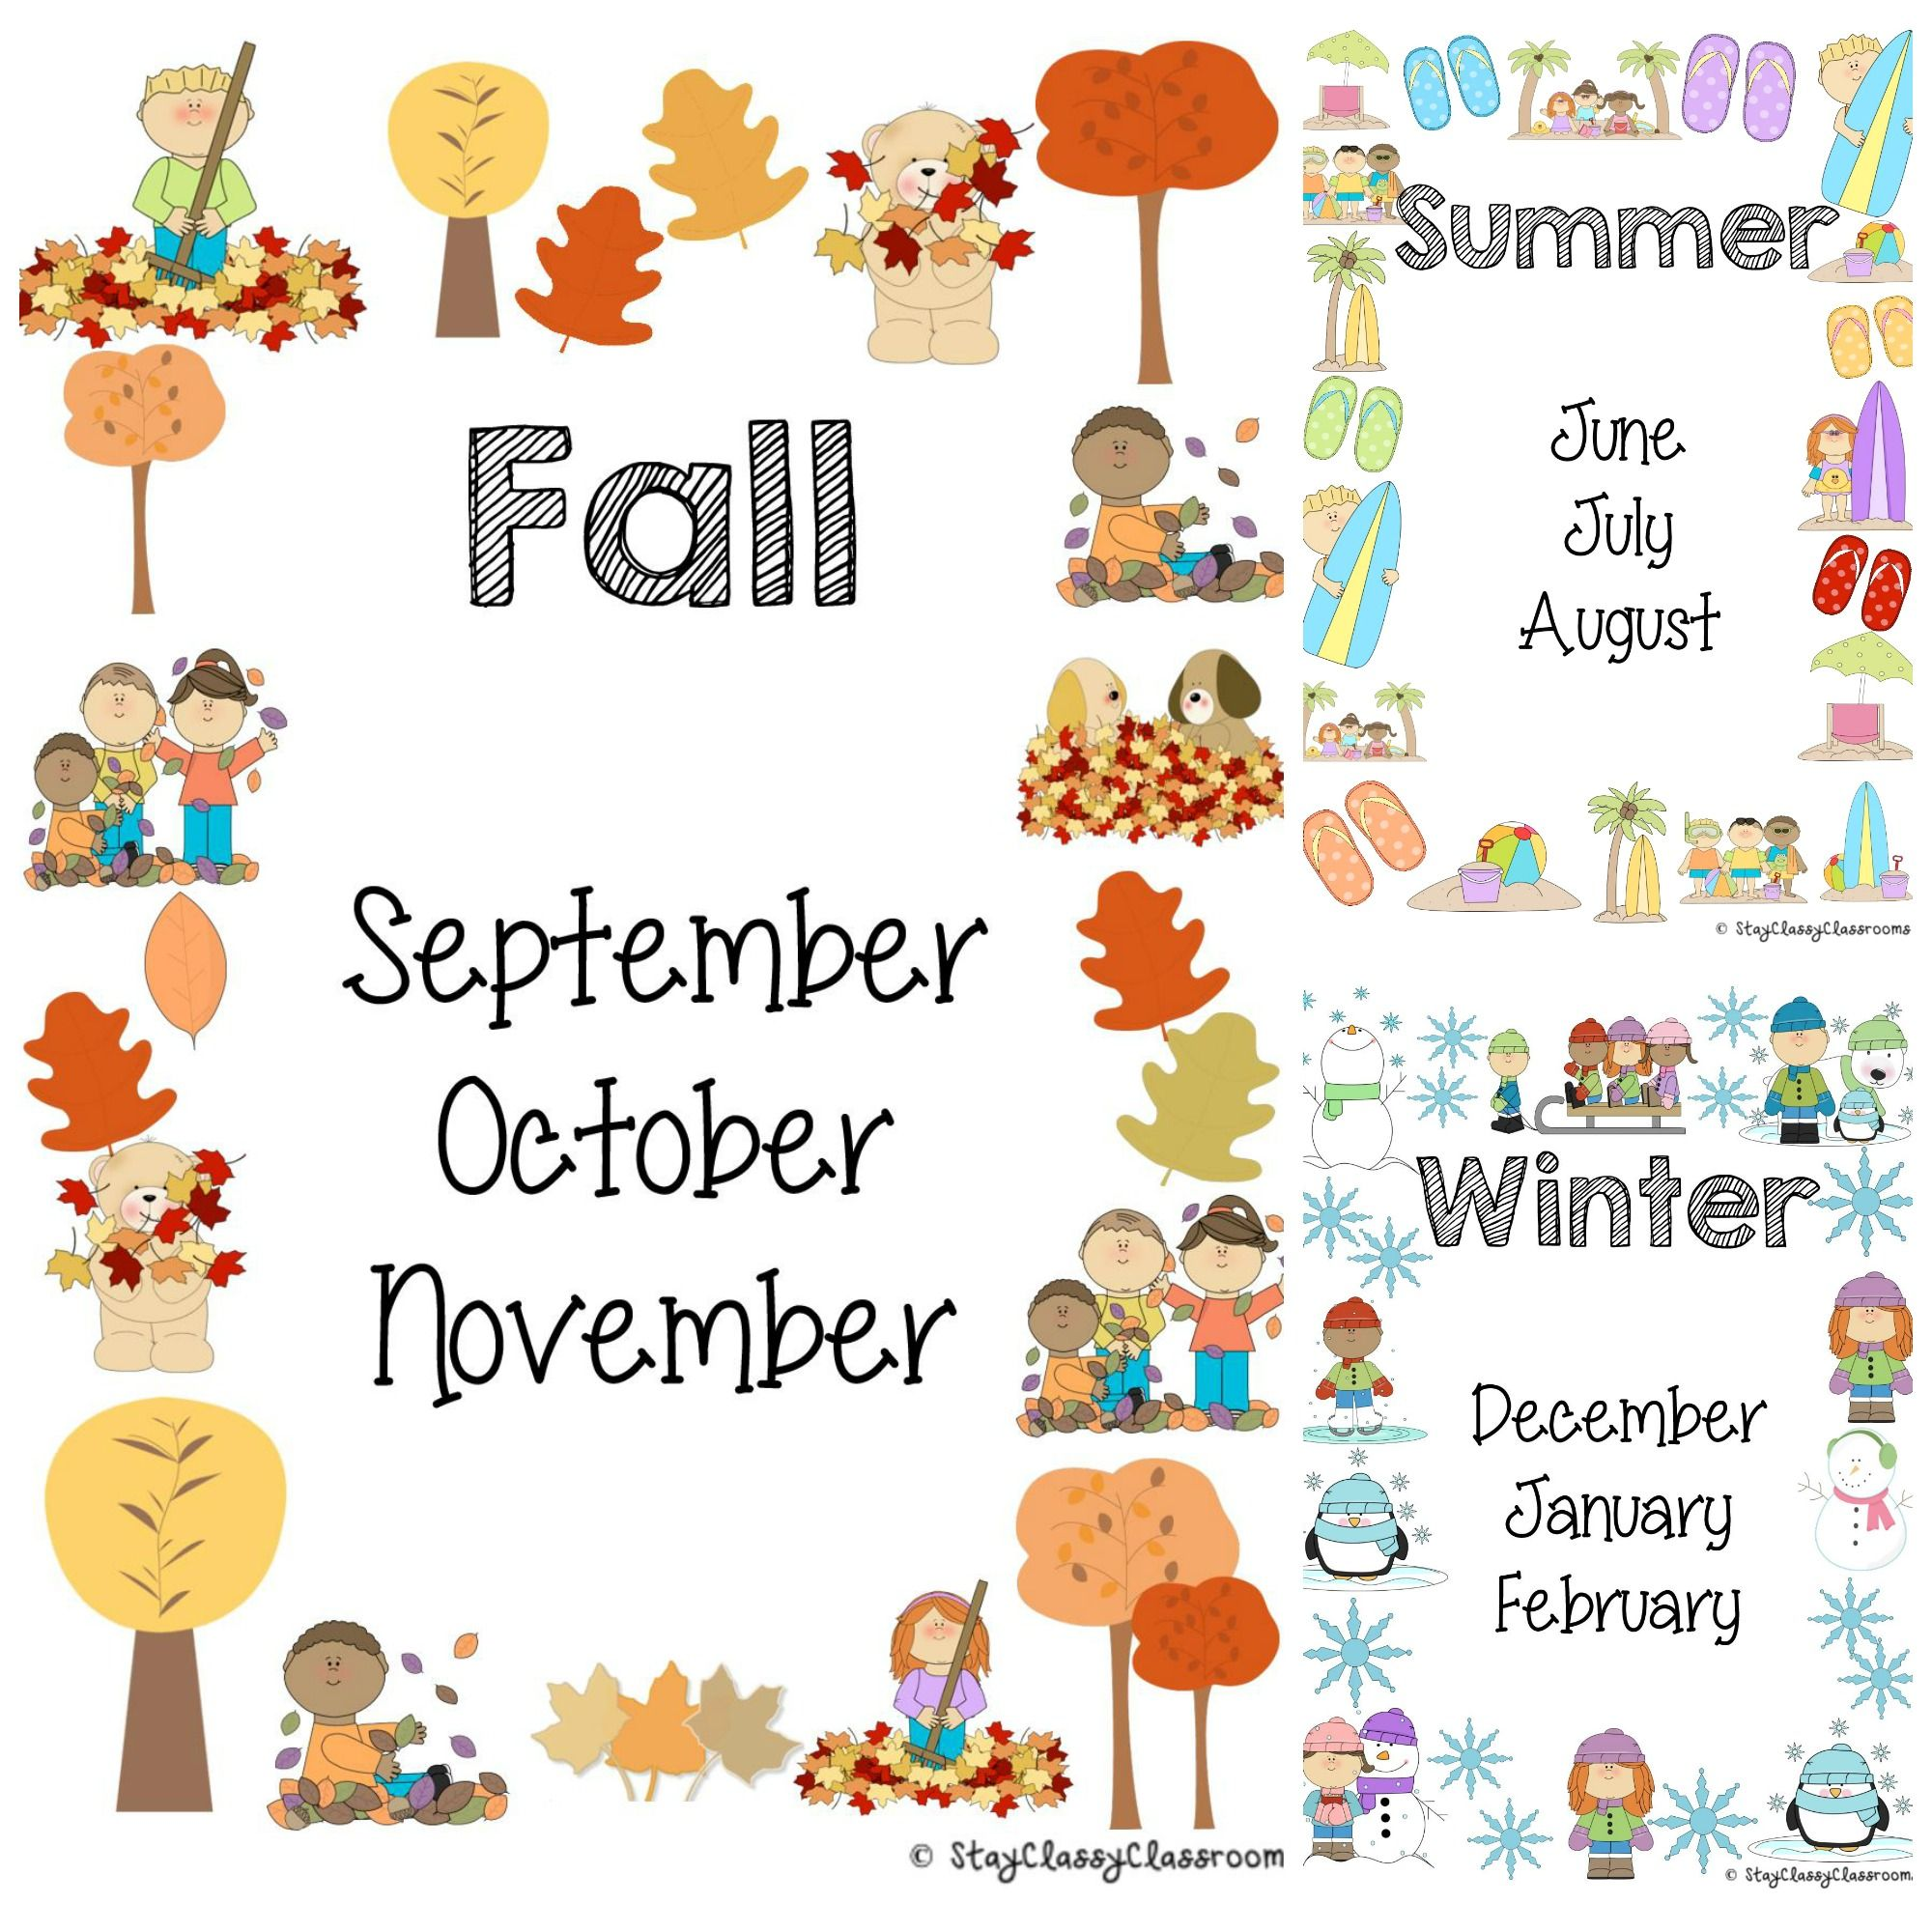 Season Posters To Assist Children With The Months That Are